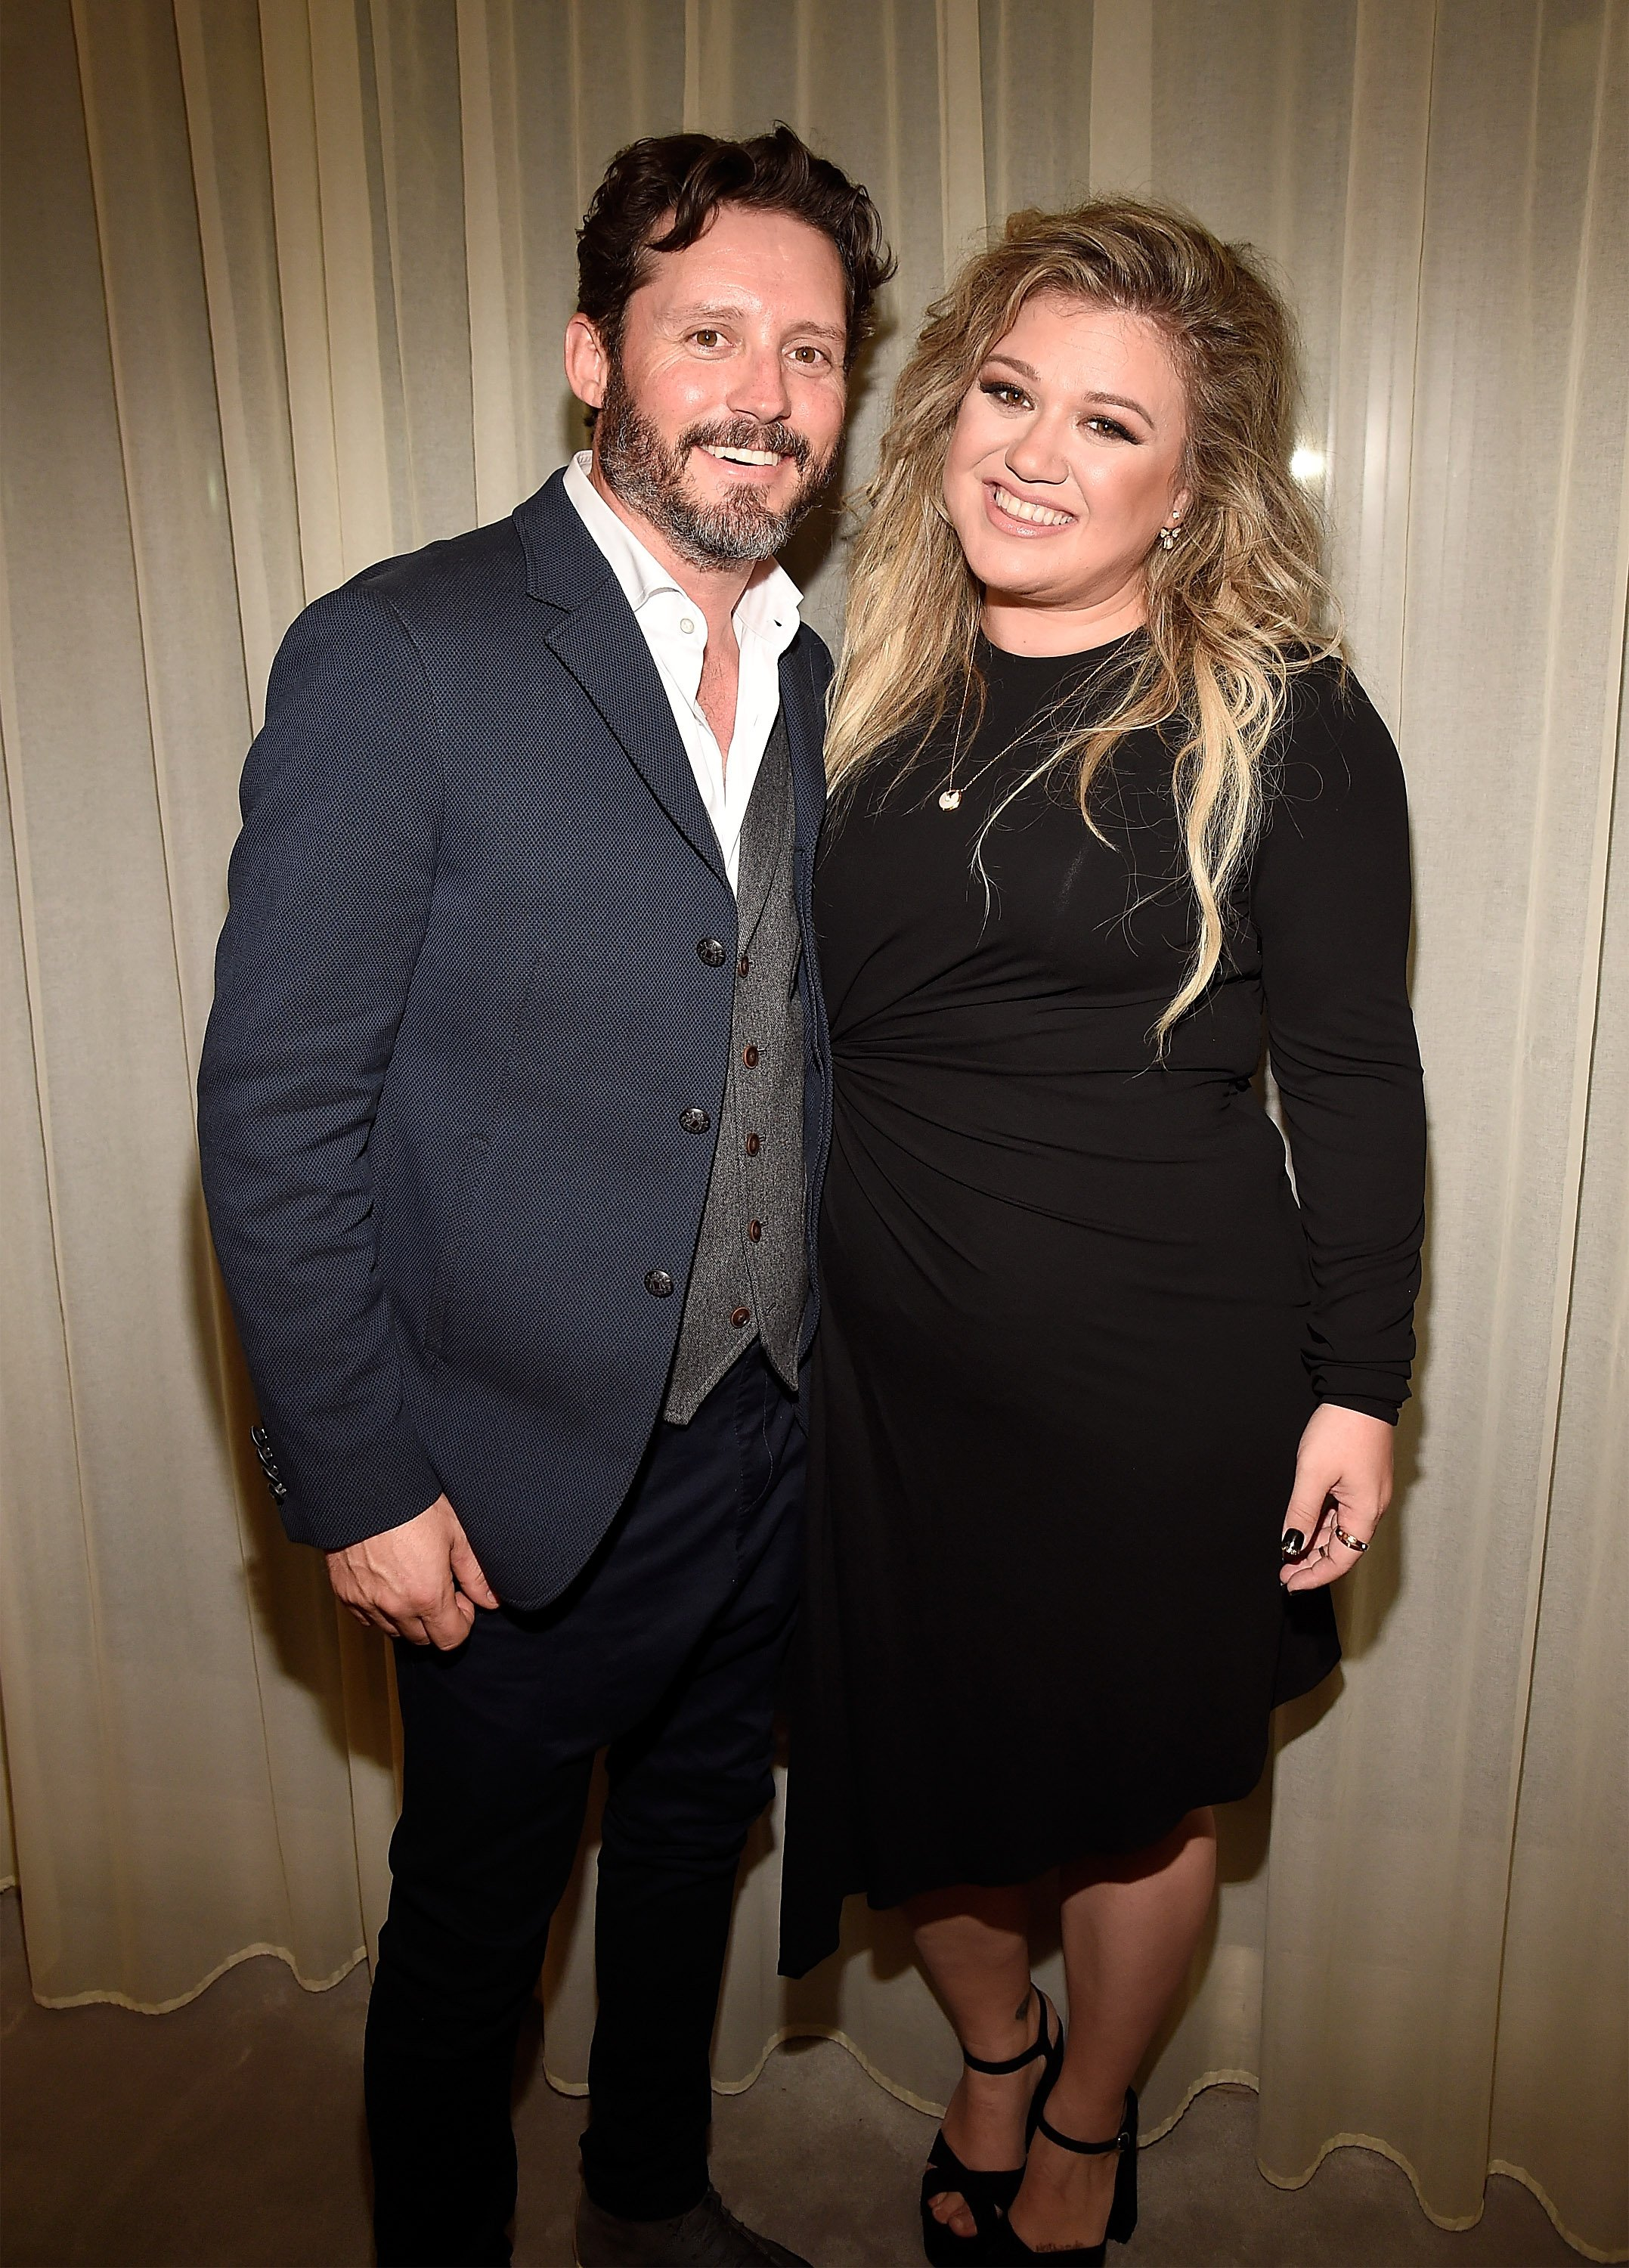 Image Credits: Getty Images  | Kelly Clarkson filed for divorce